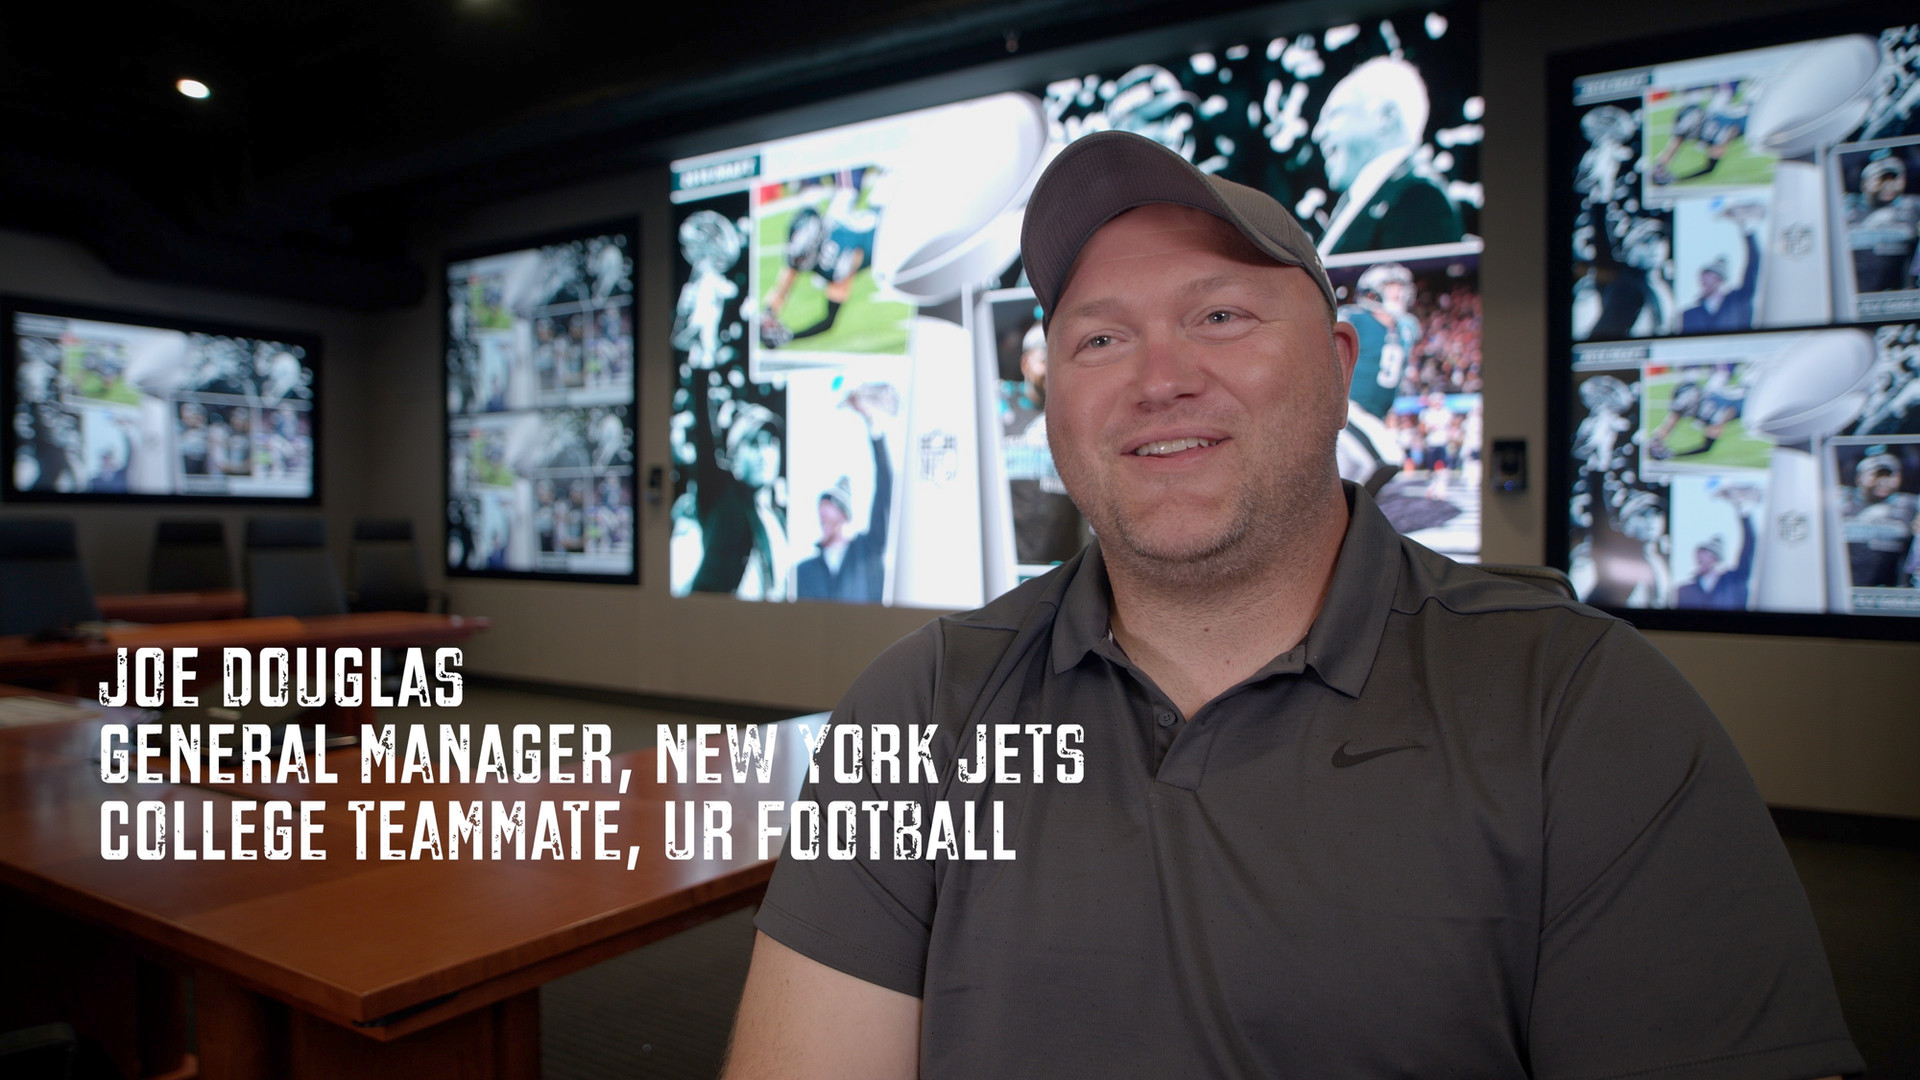 This is one of the hardest working and humble guys I know. His name is Joe Douglas. He is a dear friend and was one of my TEAMMATES at the University of Richmond. He was just hired to be the General Manager of the New York Jets. What people don't know is it took him 20 years of grunt work that no one saw. Months of time away from his family. He grinded it out as a junior scout for the better part of two decades as he climbed the ranks. I practiced against Joe everyday in college. He always brought the best out of me. I have tremendous RESPECT for his drive and character. He's one of my many TEAMMATES who have achieved at a high level and continue to climb. There are so many lessons we could pull from his journey. I believe the most important is patience and persistence. Click on the link in my bio to see footage of Joe in the TV show HARD KNOCKS in his first year with the Ravens. Also, Joe was the head of Player Personnel when the Eagles won their last Super Bowl. Thank you Joe for being a part of the @justakidfromfallriver film project. Another shoutout to @monarchproductions for his relentless work on this project.